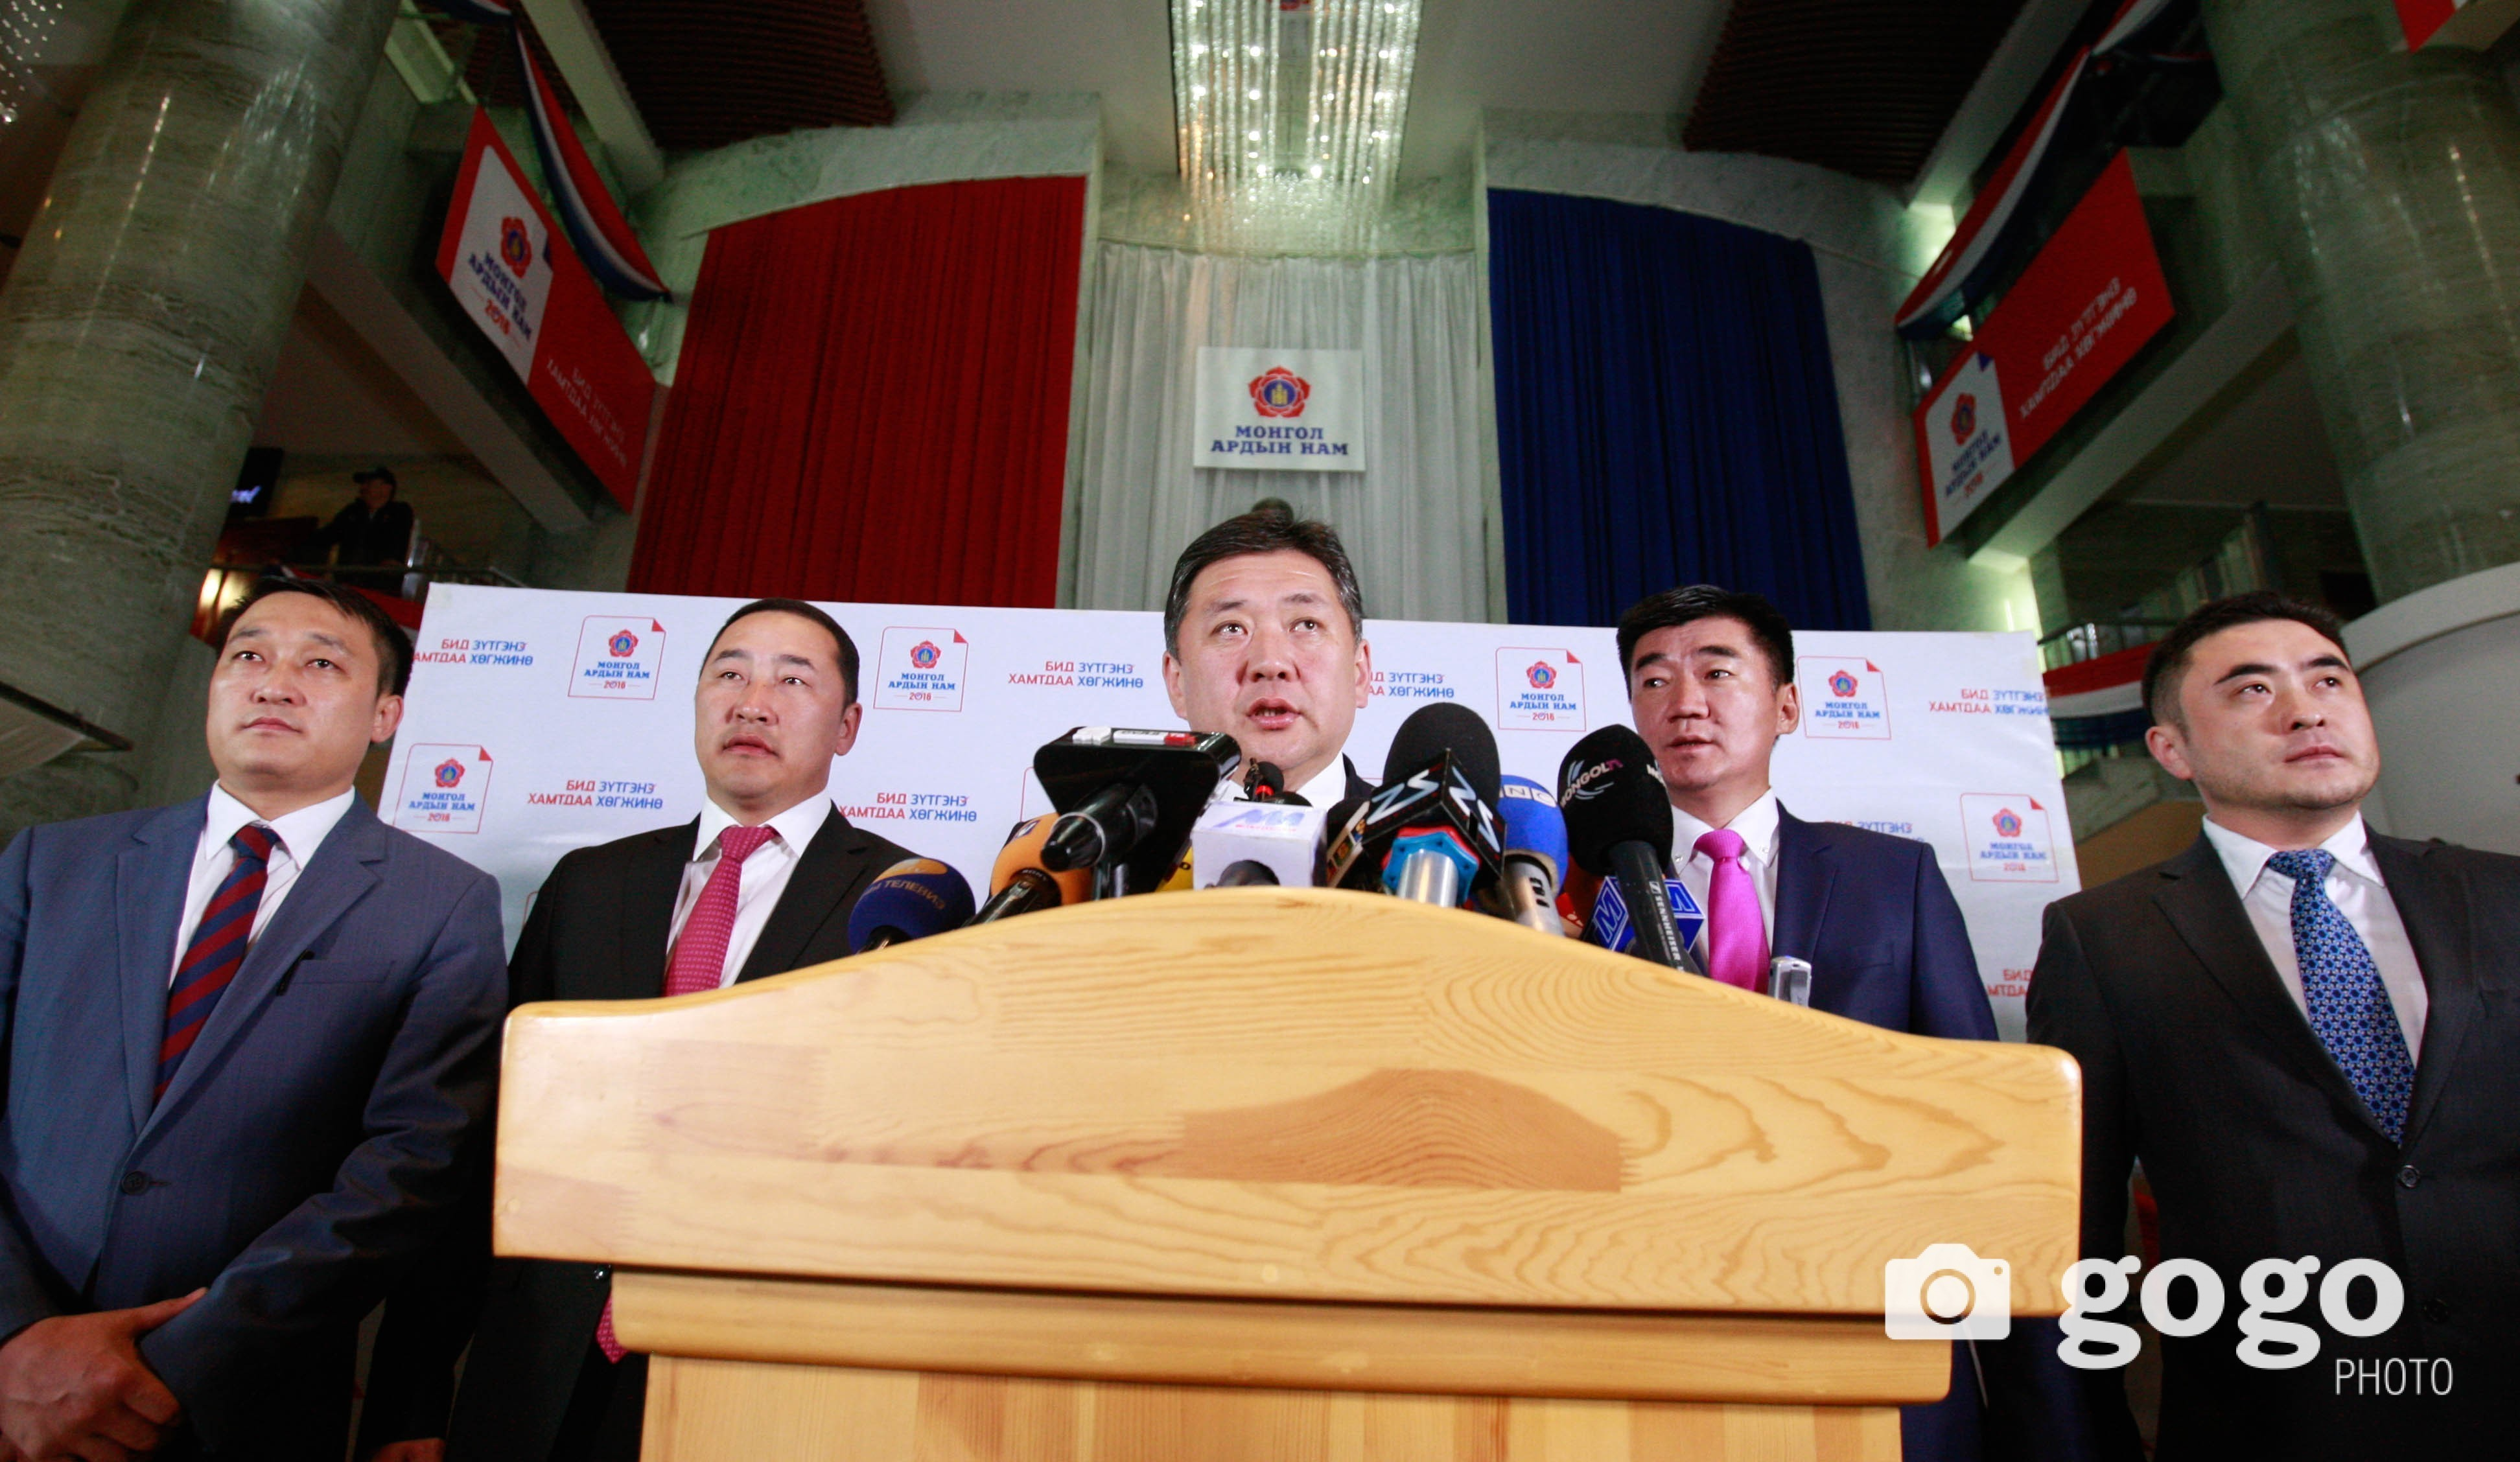 Of mongolia today tomorrow and the development bank of mongolia s - It Seems Like The World Sees Mongolia As A Bankrupt Country That Has Nothing Left To Do Other Than Announce Its Financial Meltdown